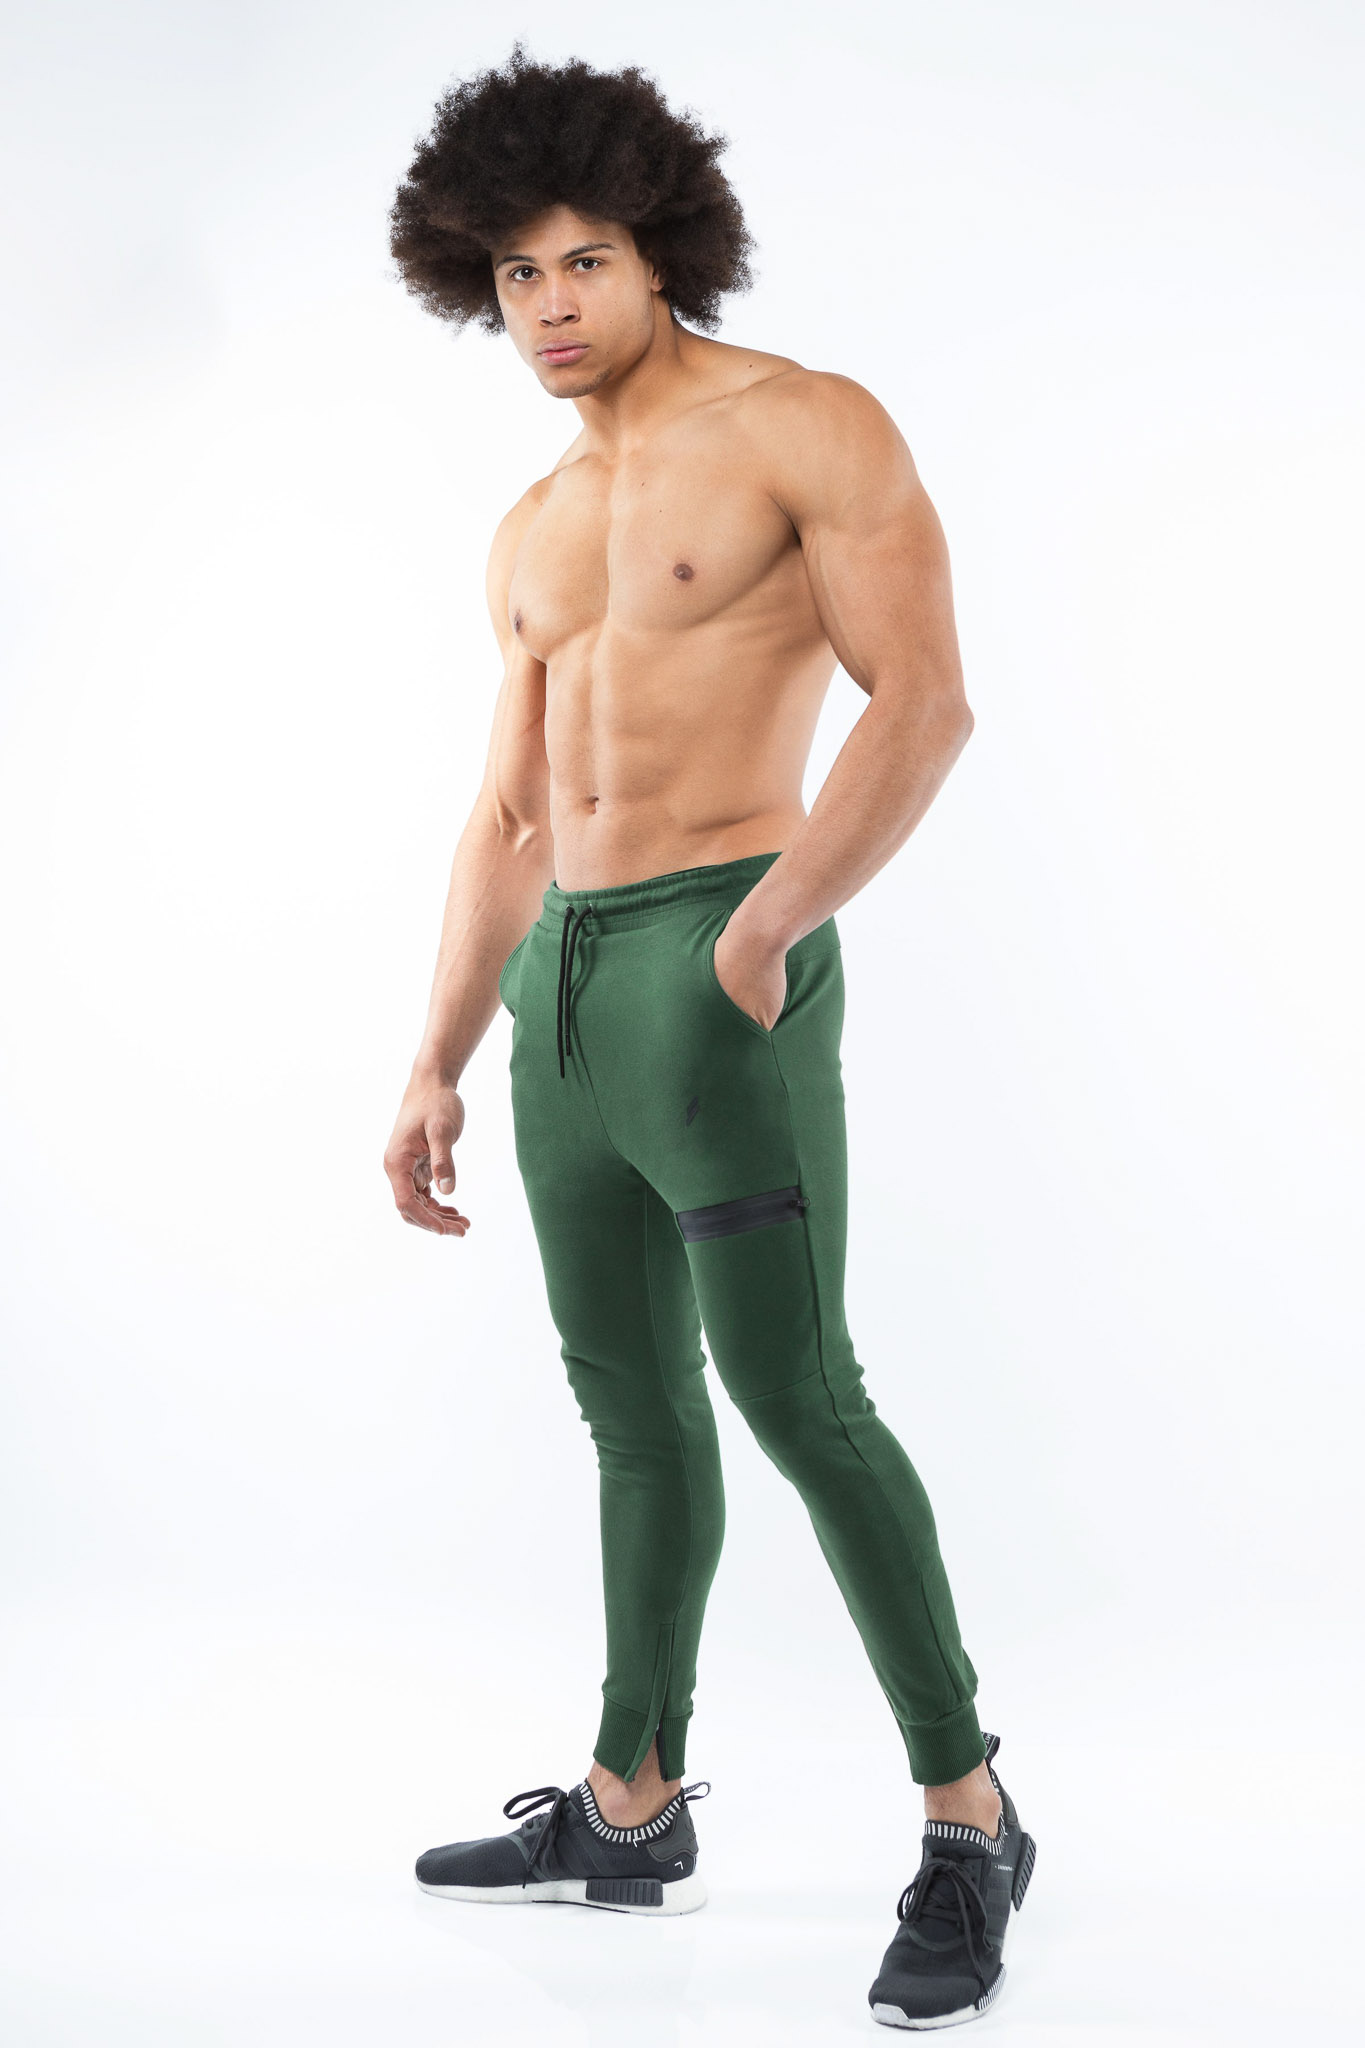 Ossie in a studio with only his green truck suit fitted pants, topless and flexing his abs